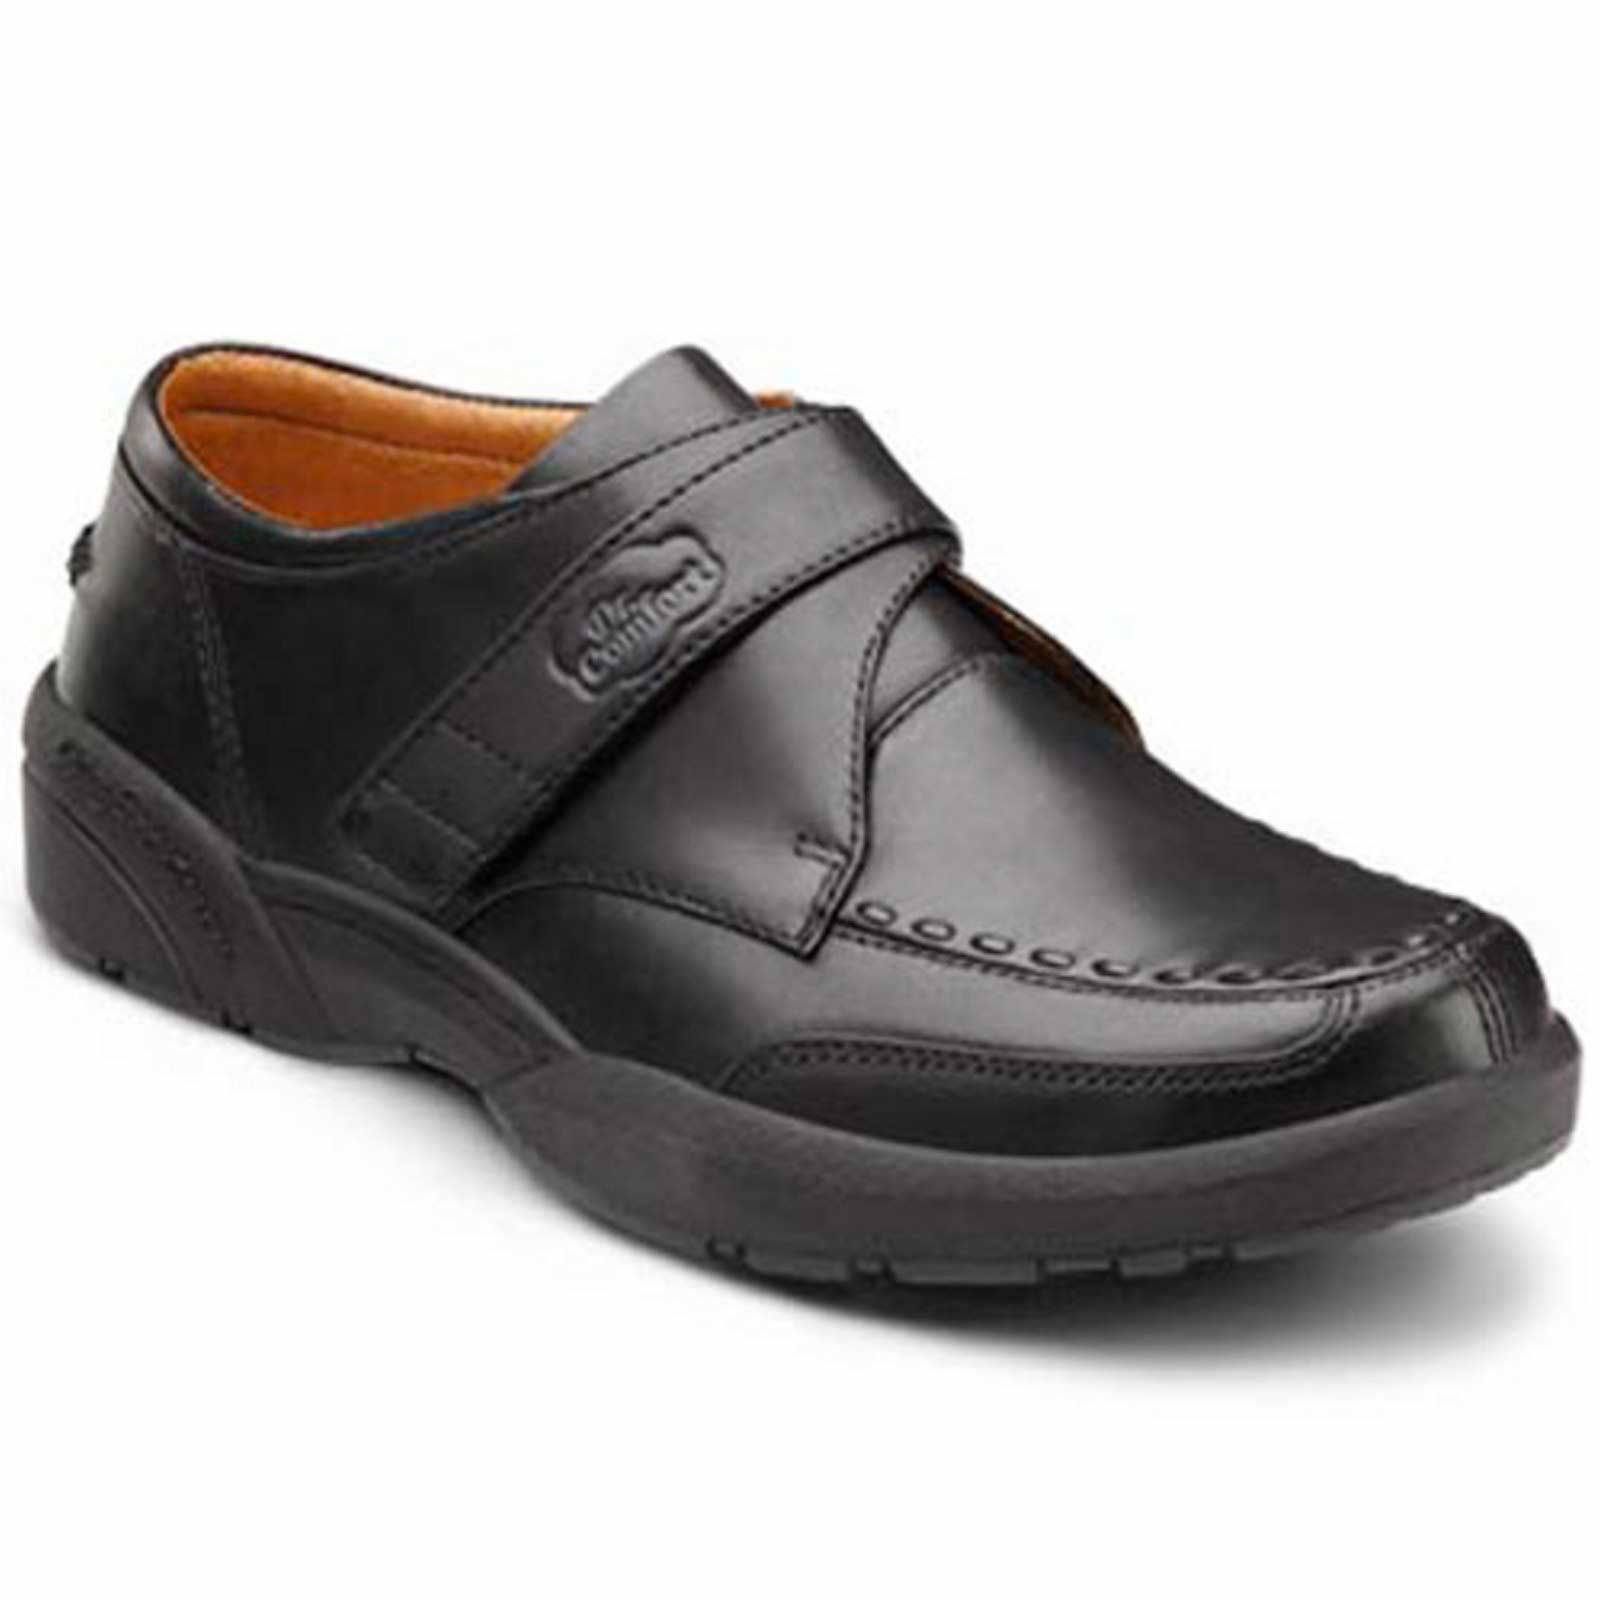 Dr Comfort Shoes - Frank - Men's Therapeutic Diabetic Shoe with Gel Plus Inserts - Casual and Dress - Medium (B-D) - Extra Wide at Sears.com